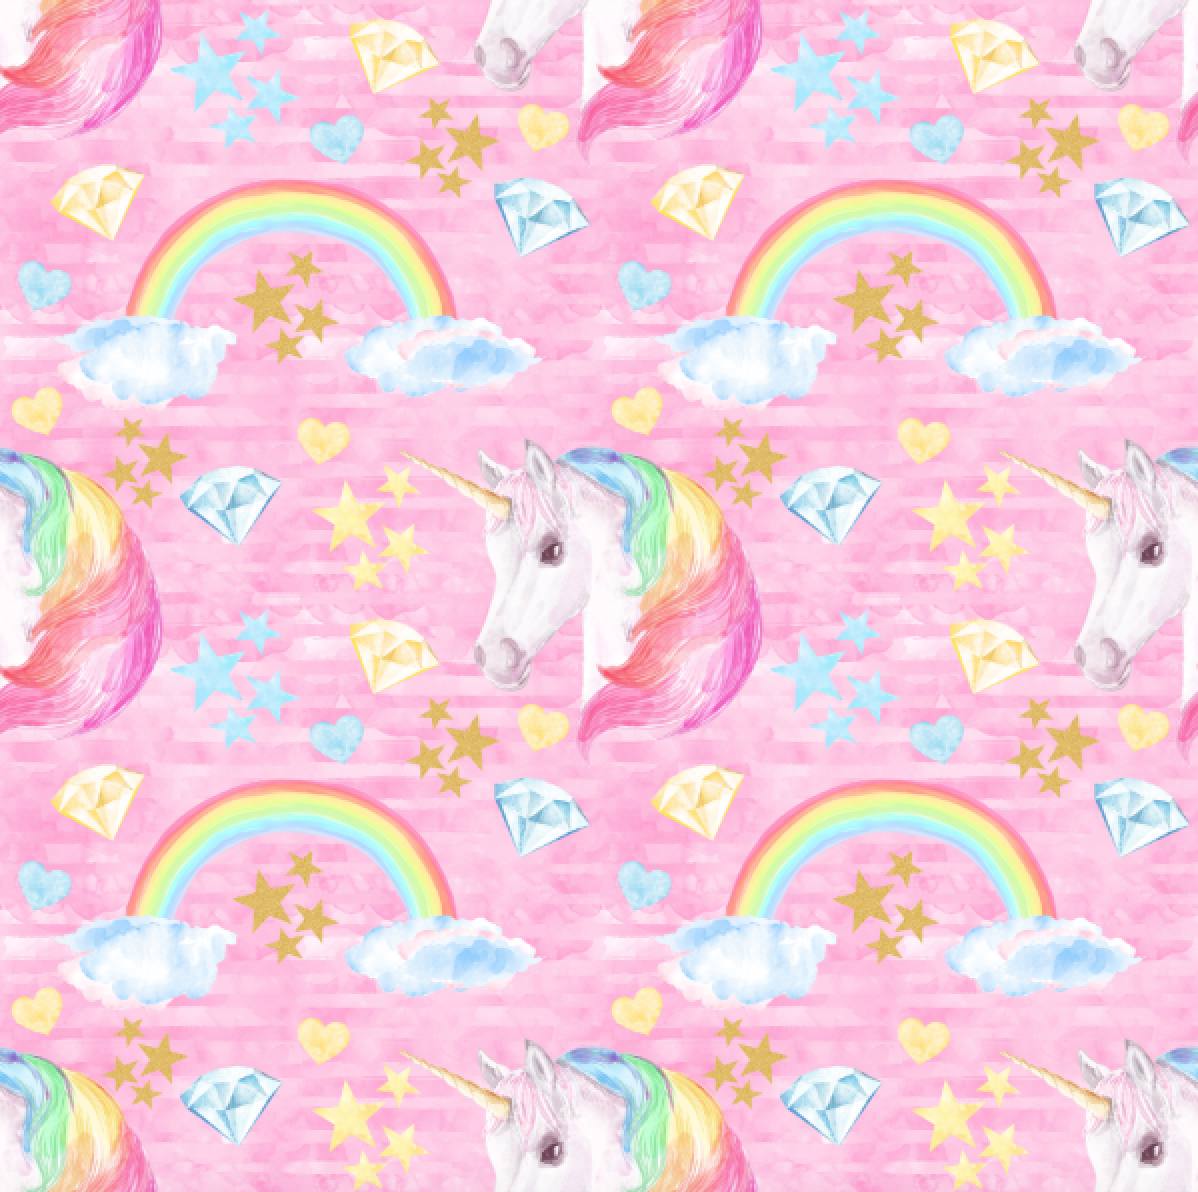 PRE ORDER Pink Unicorn Dreams - MM Fabric Print